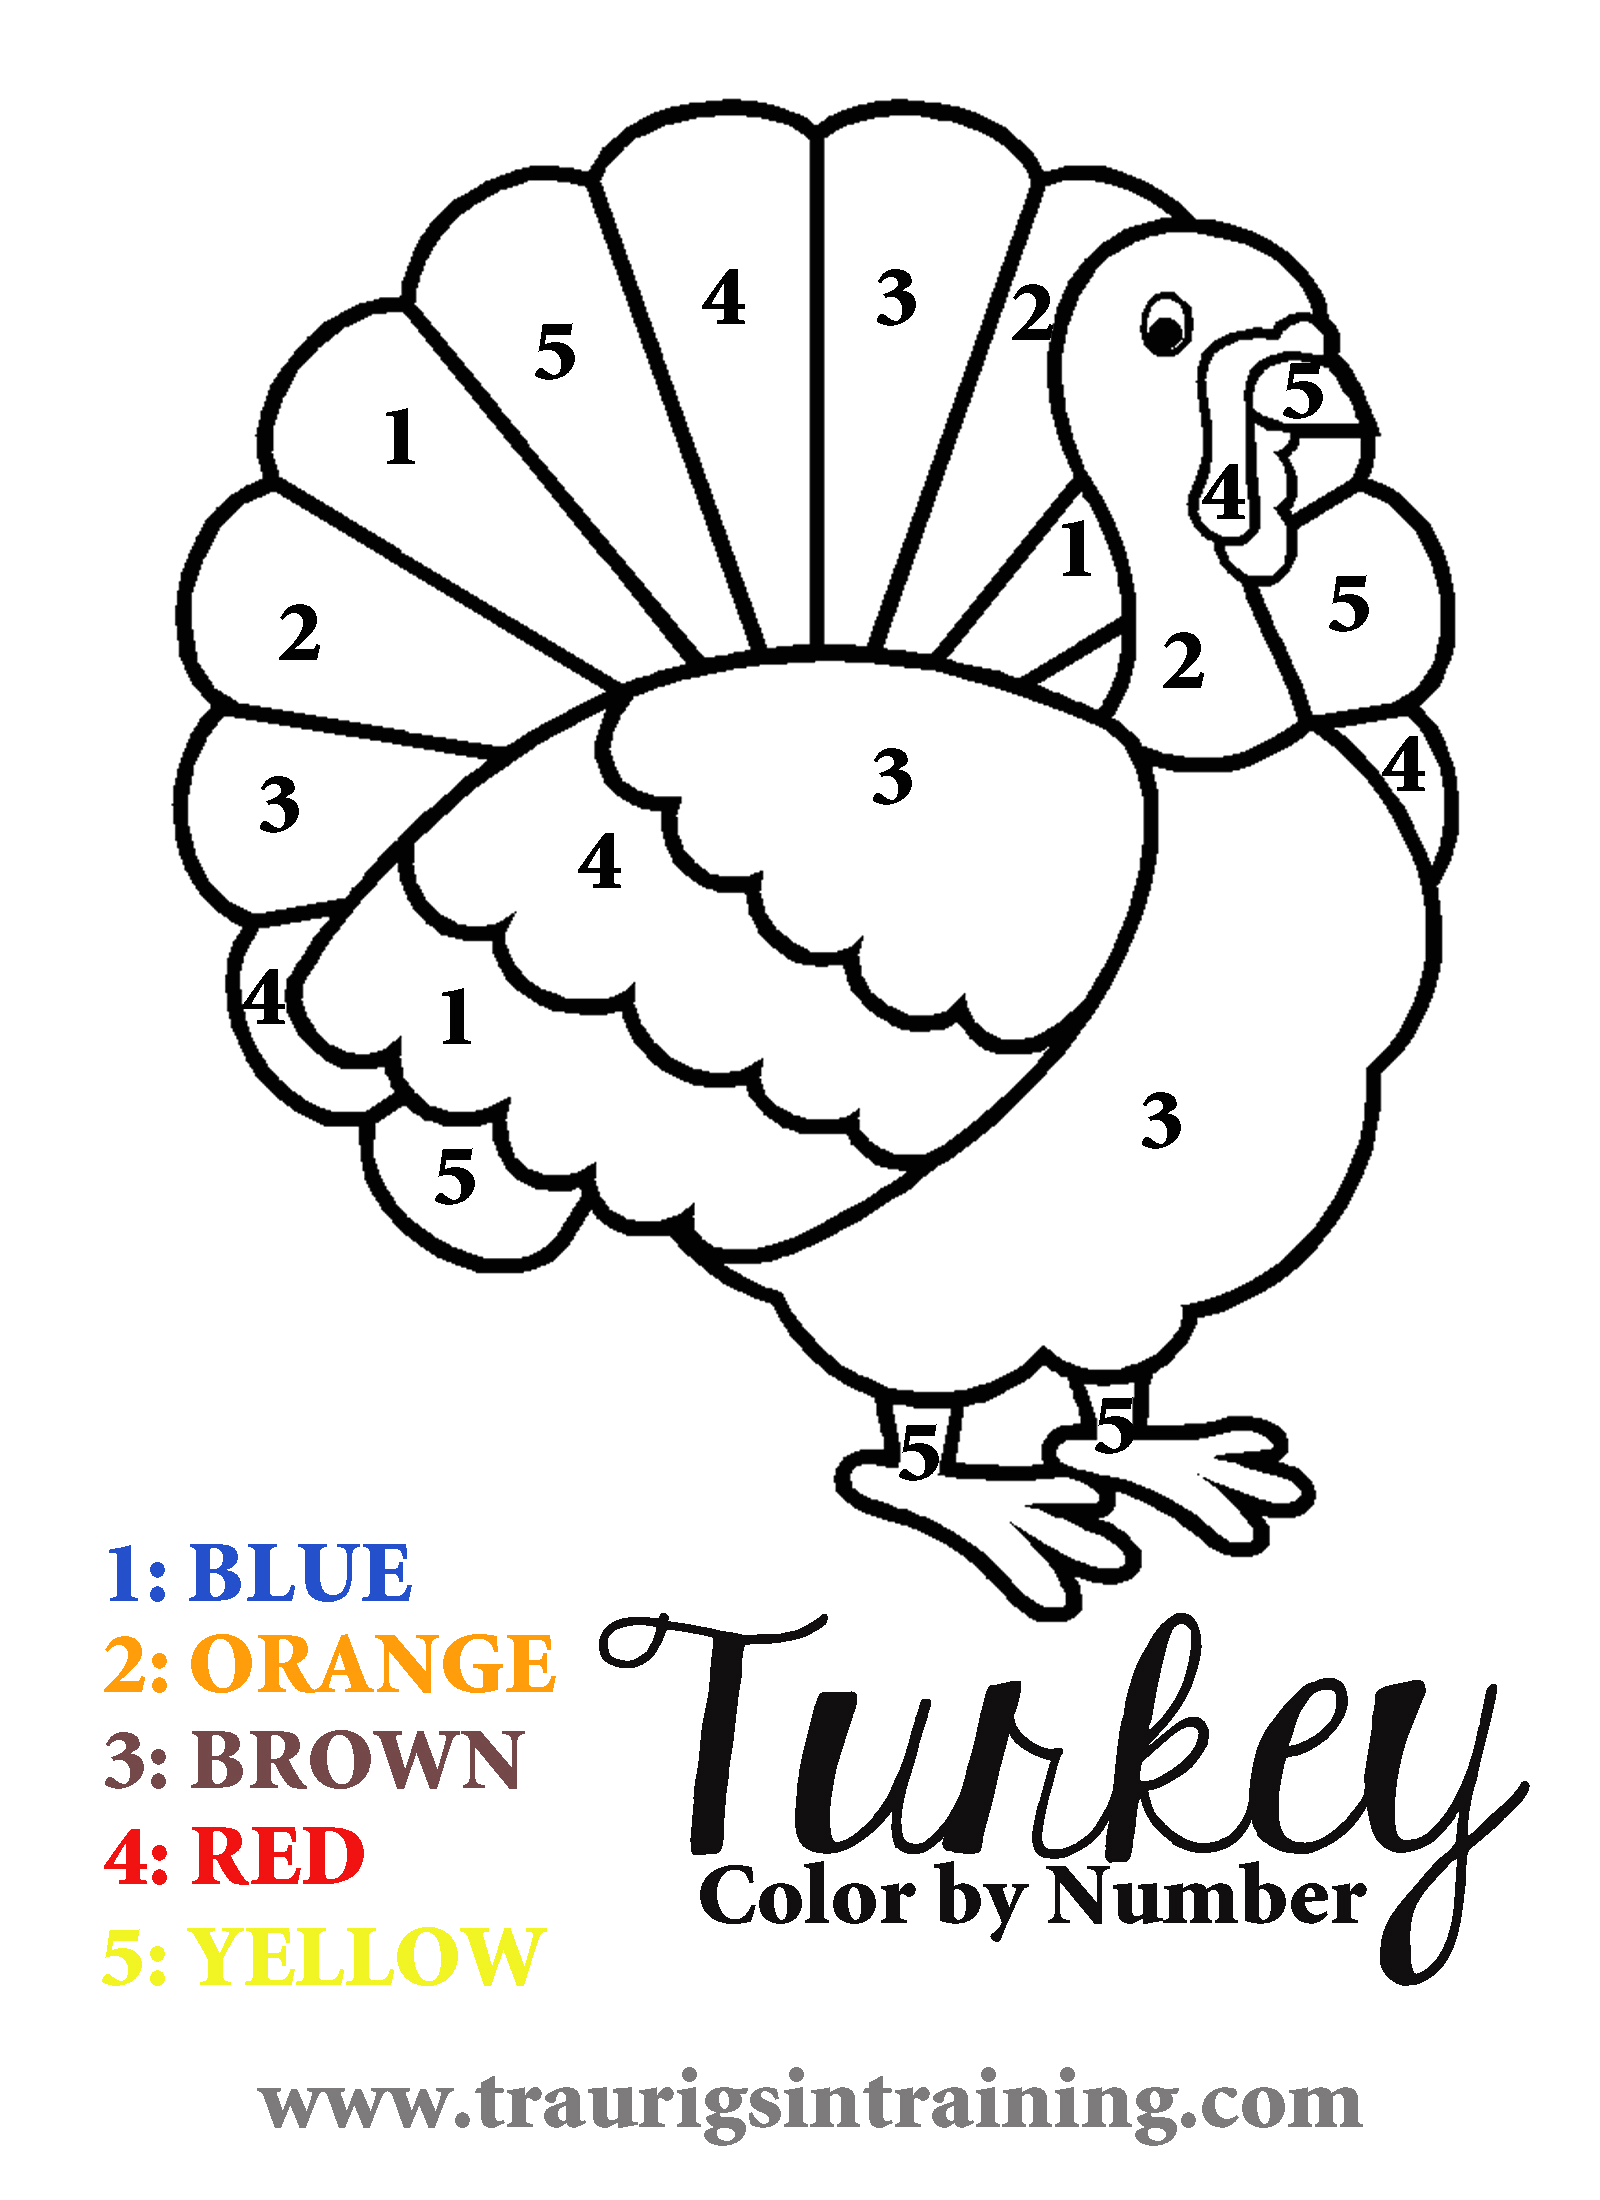 Free Printable Color by Number Thanksgiving Pages 6 Best Of Free Printable Color by Number Turkey